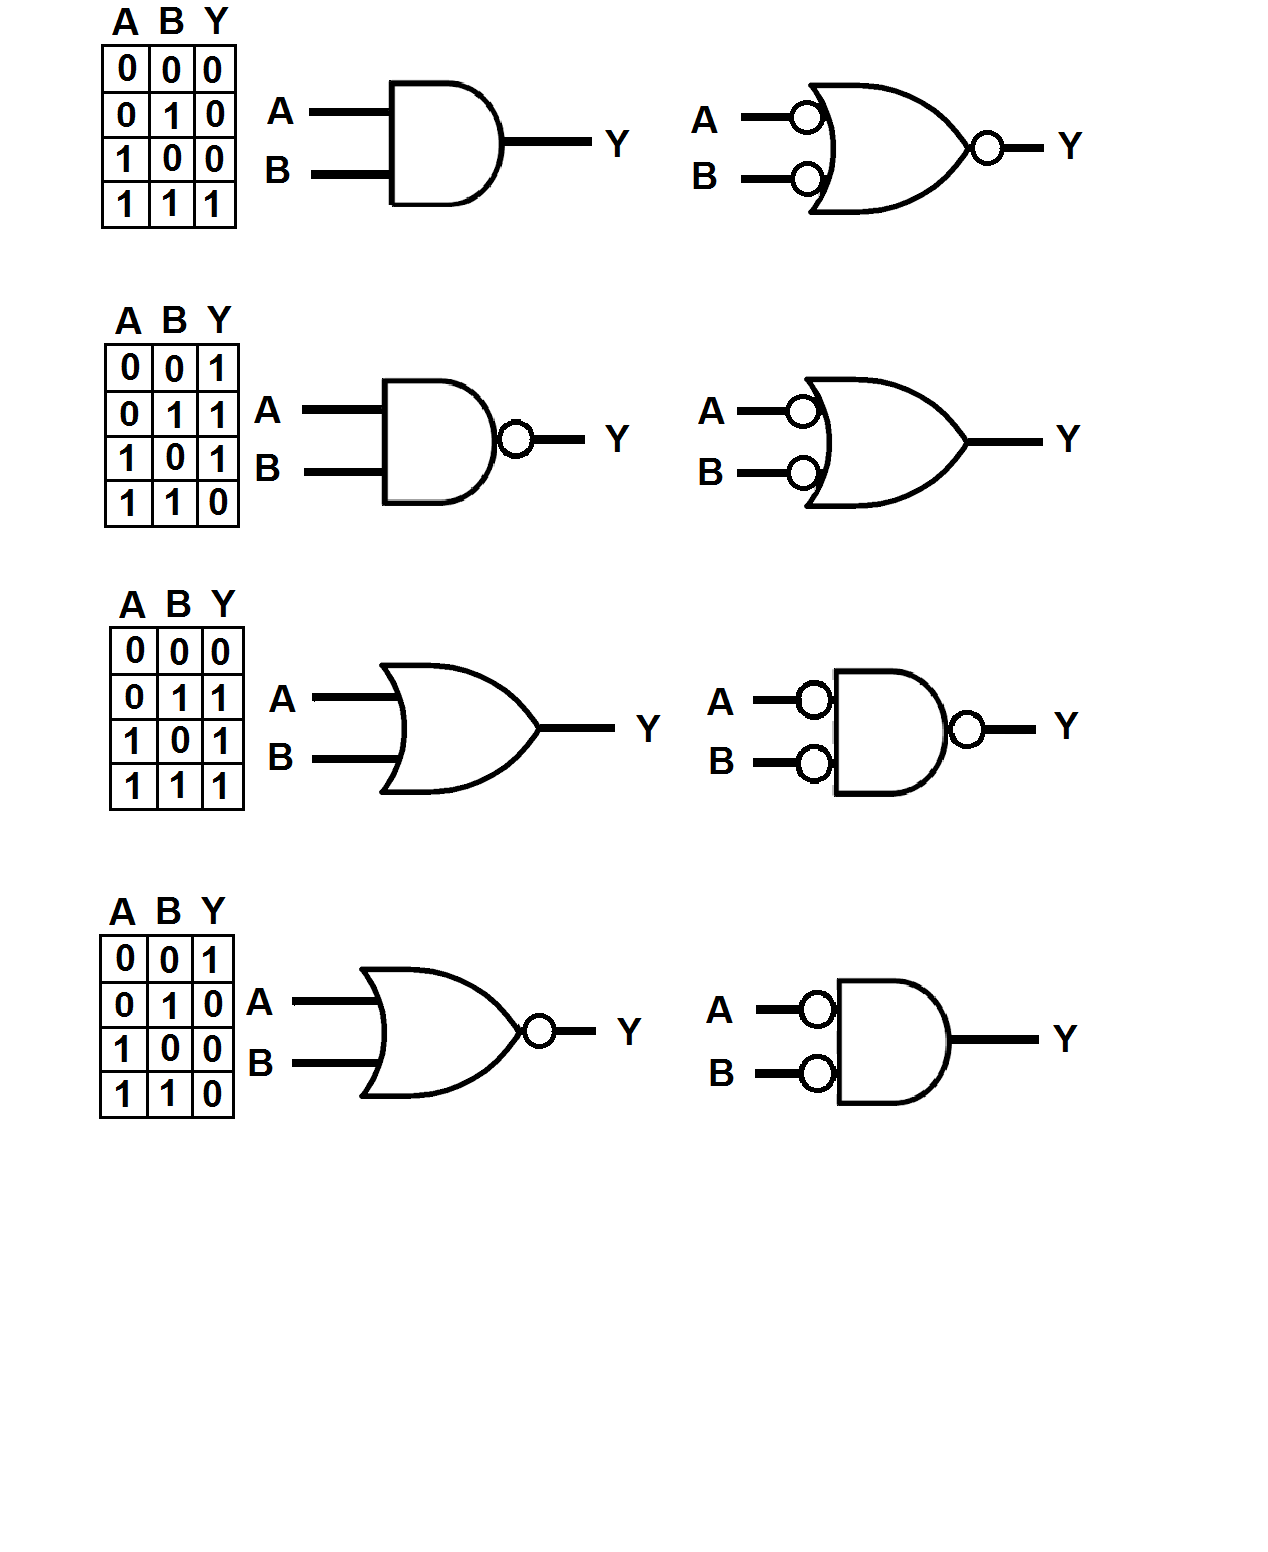 Build And Logic Gate With 74 00 Ics Nand In Negative